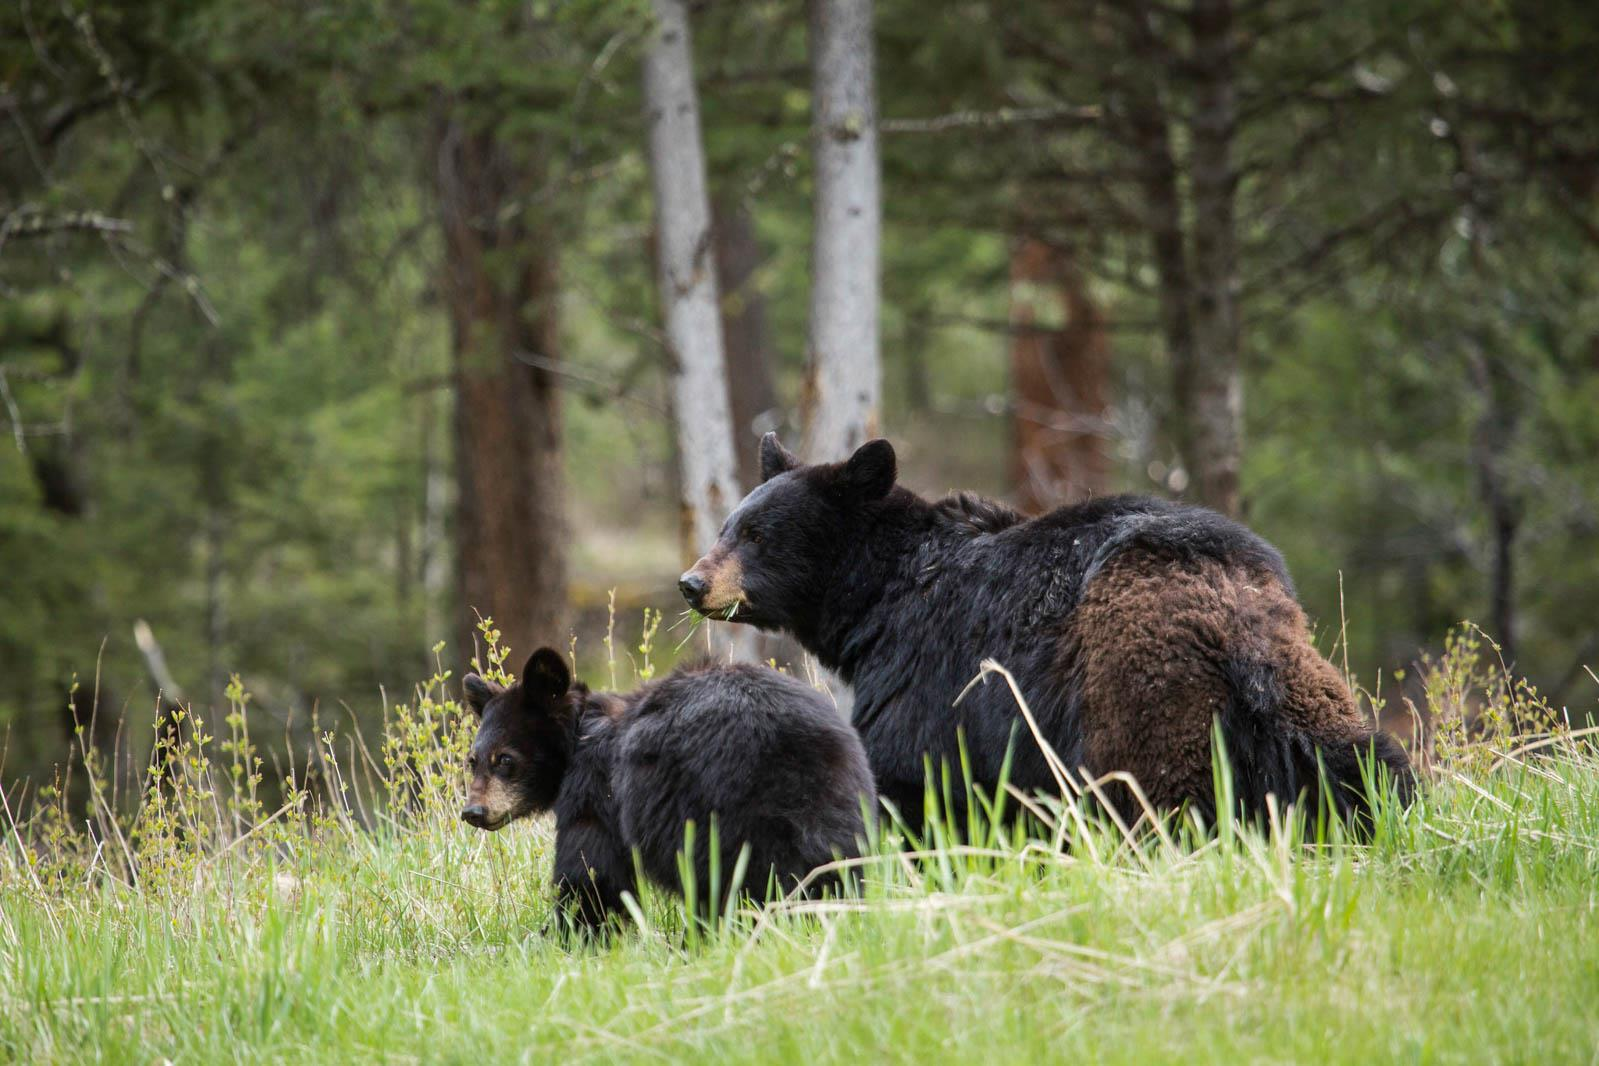 Bears in a national park, showing one of our nature photography tips.